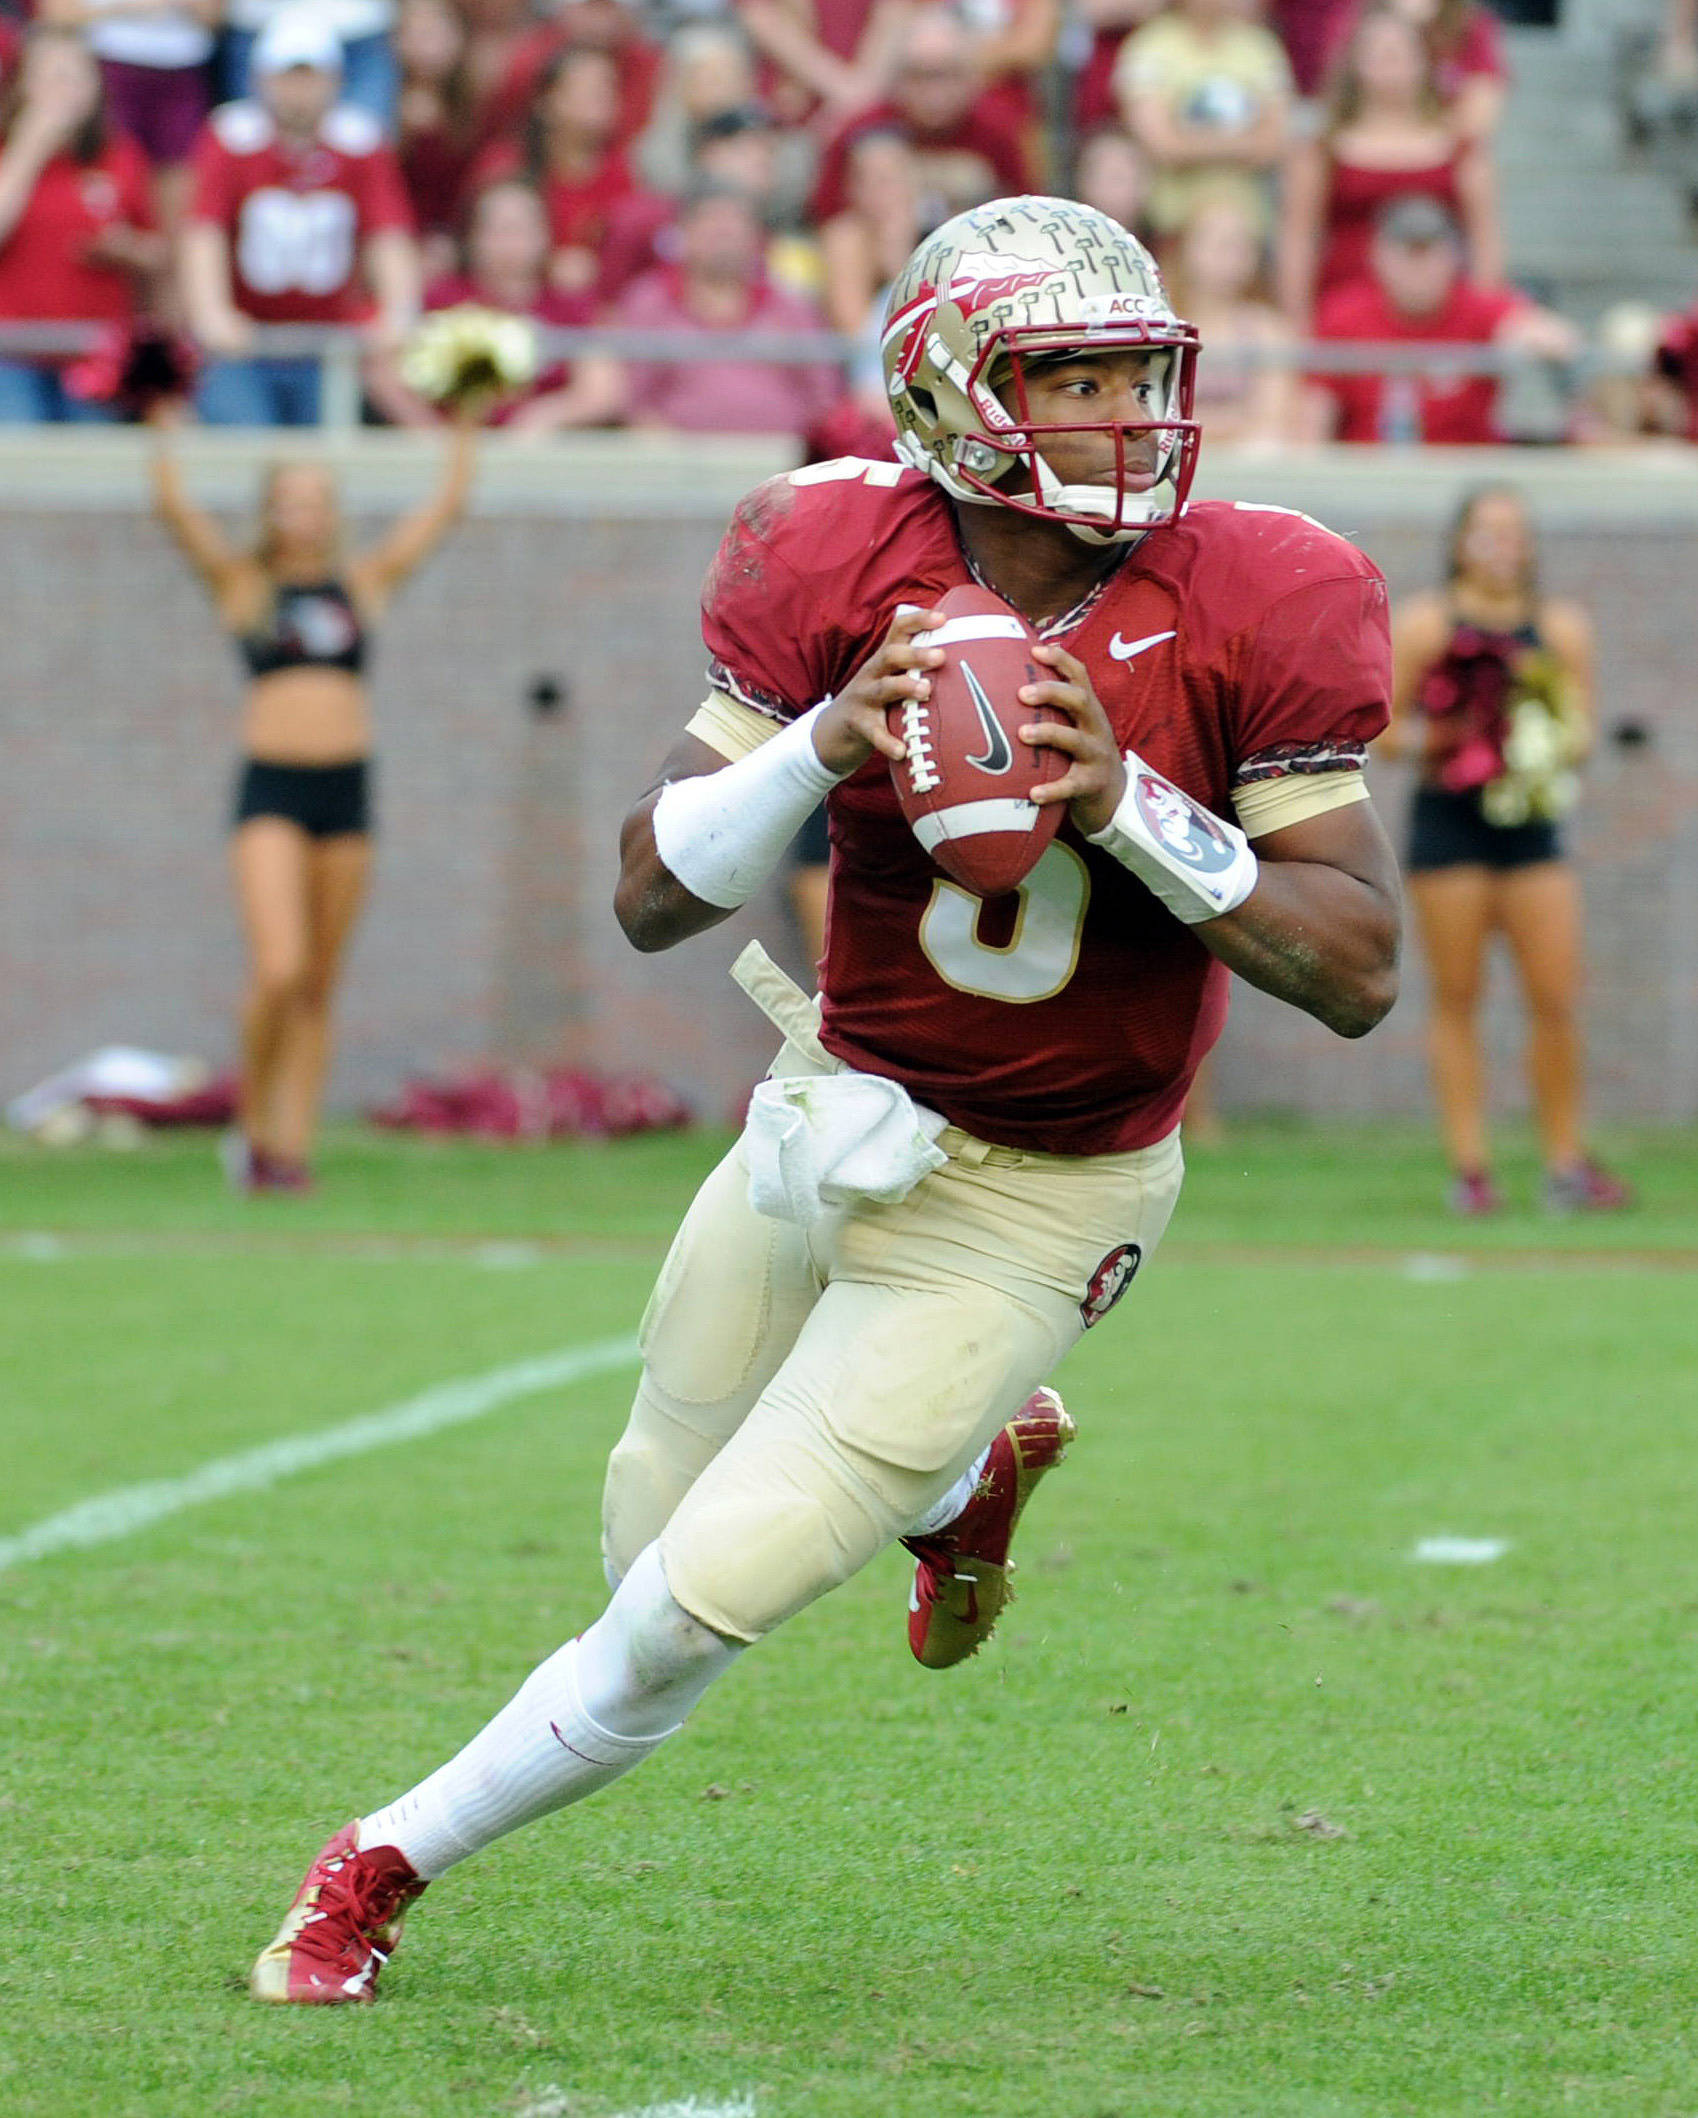 Jameis Winston (5) looks to throw the ball. Mandatory Credit: Melina Vastola-USA TODAY Sports